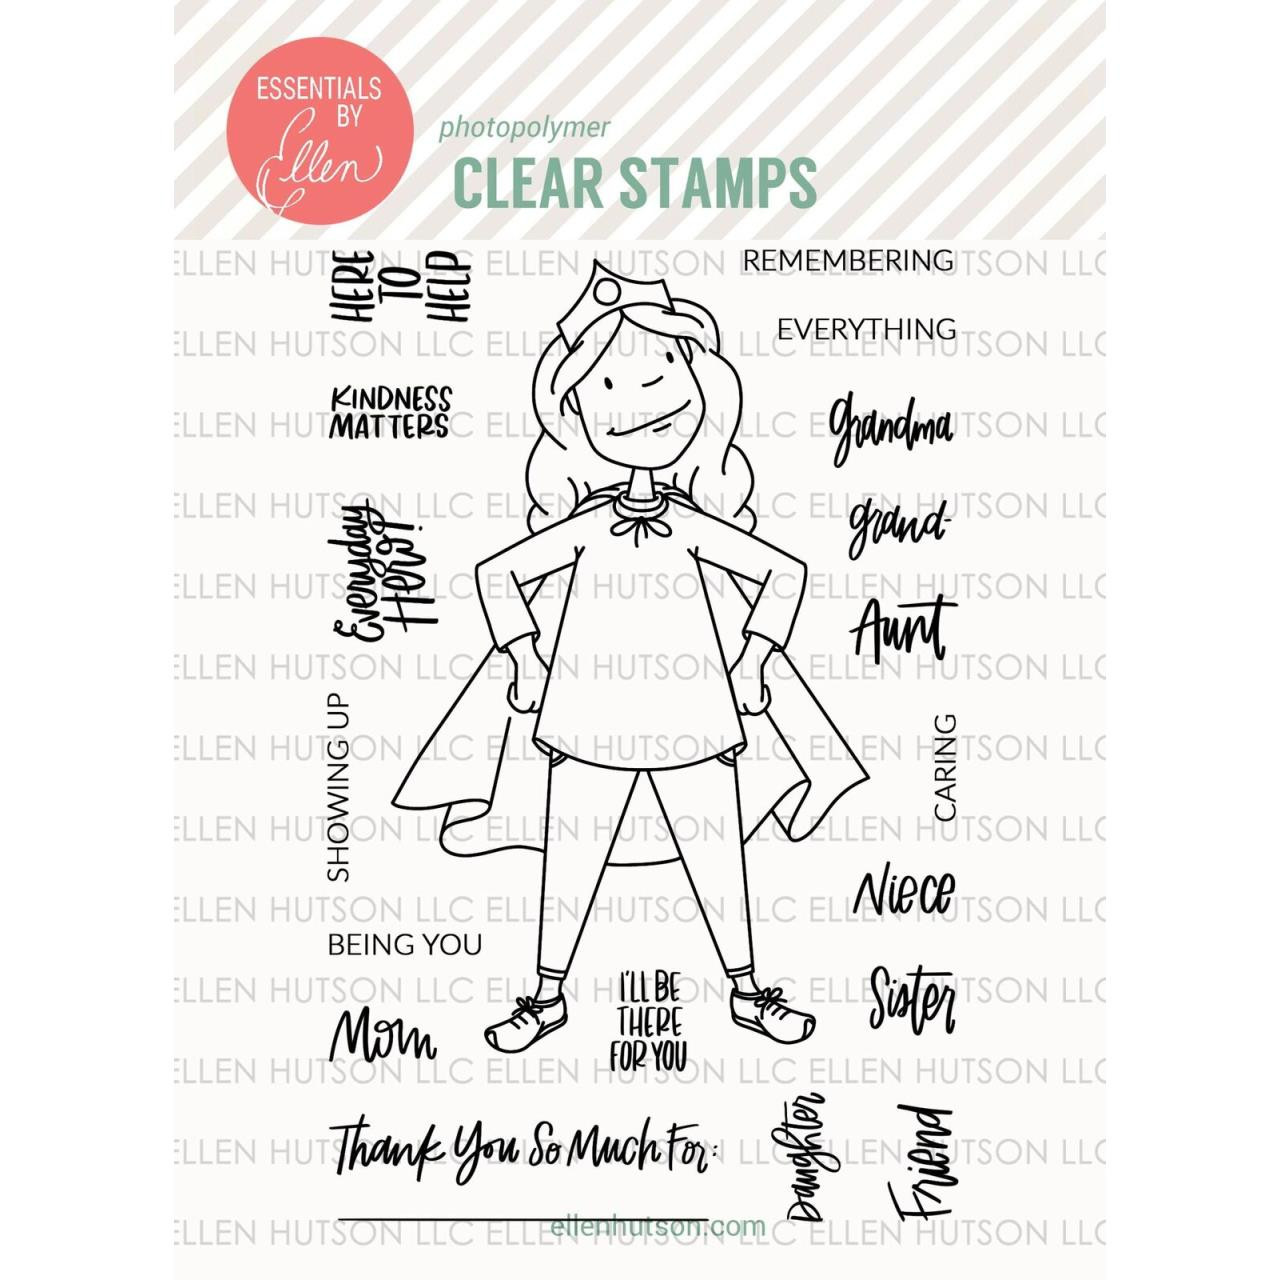 Essentials by Ellen Clear Stamps, Leading Ladies - Everyday Hero Lady By Brandi Kincaid -